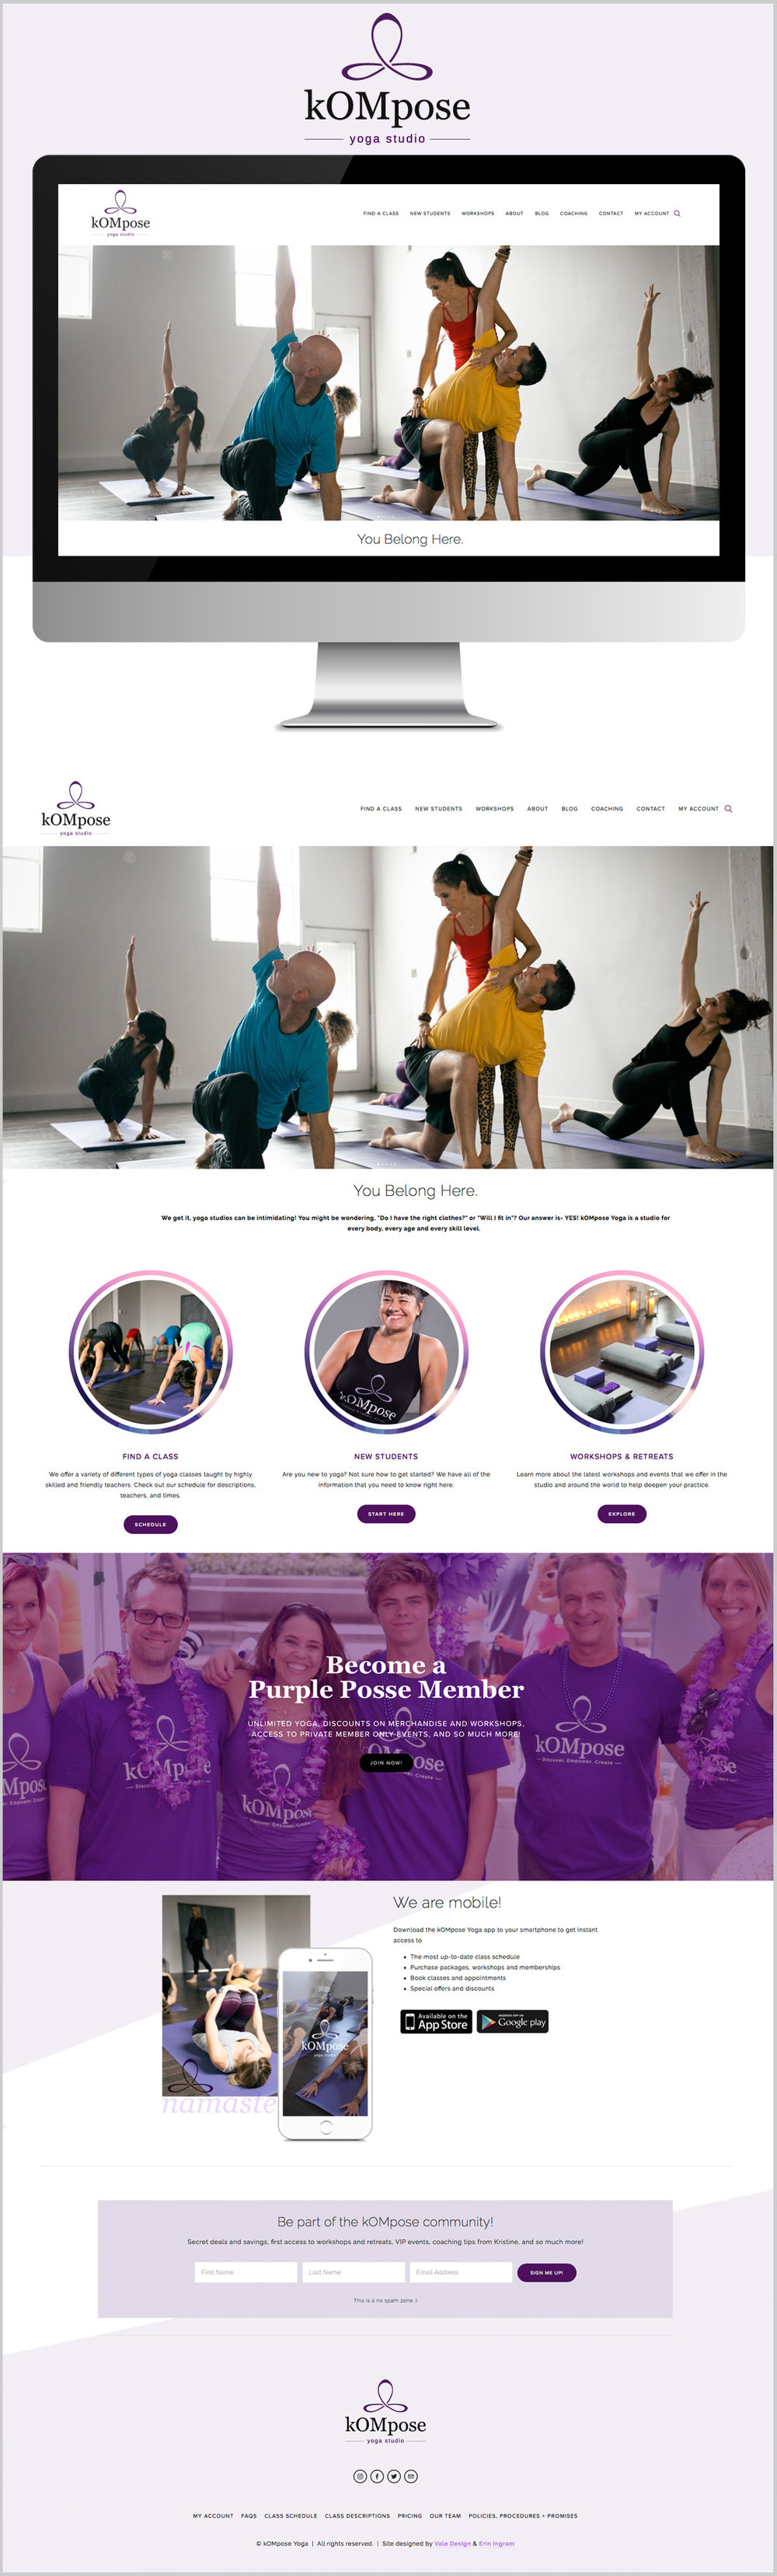 Vale Design - Website - kOMpose Yoga